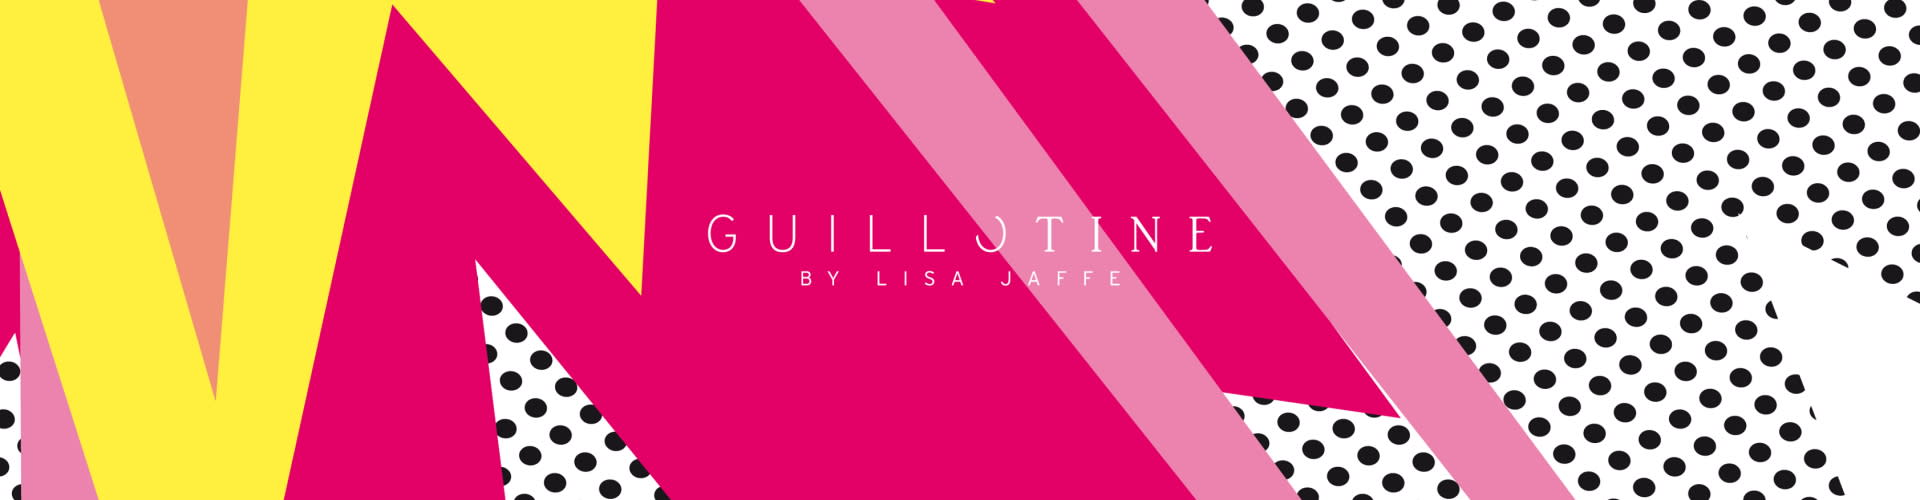 Guillotine - 44 Stanley